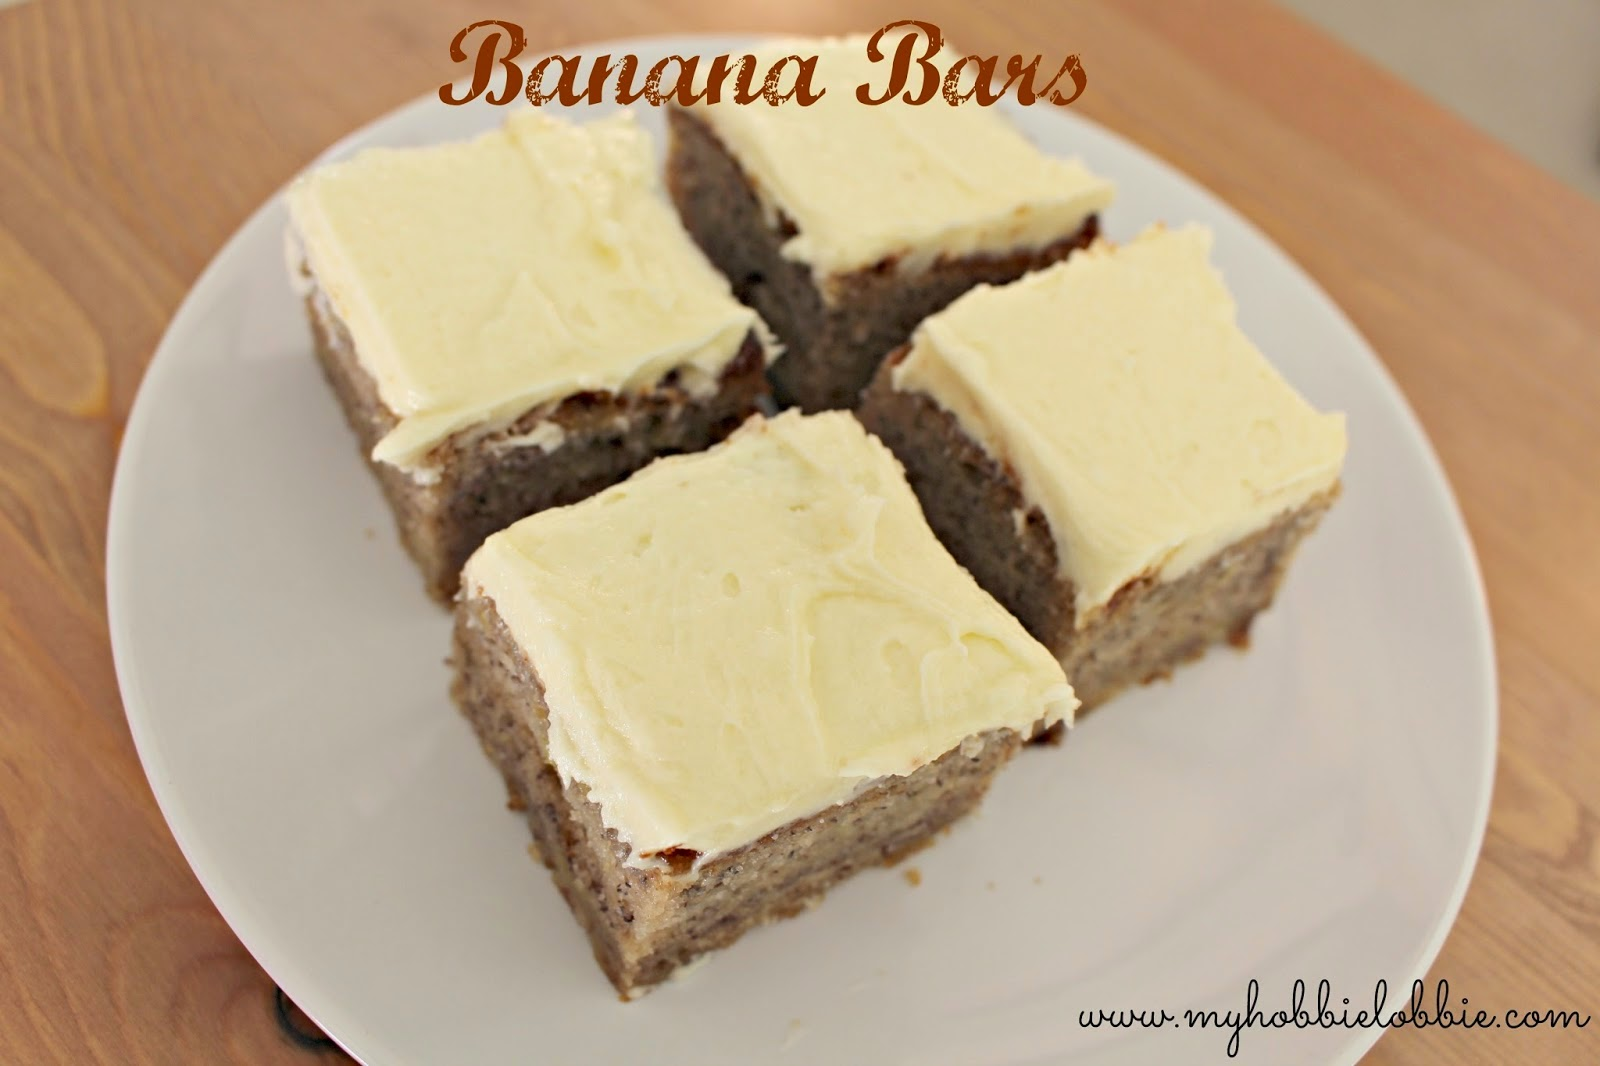 Featured Recipe: Banana Bars with Cream Cheese Frosting from My Hobbie Lobbie #SecretRecipeClub #banana #recipe